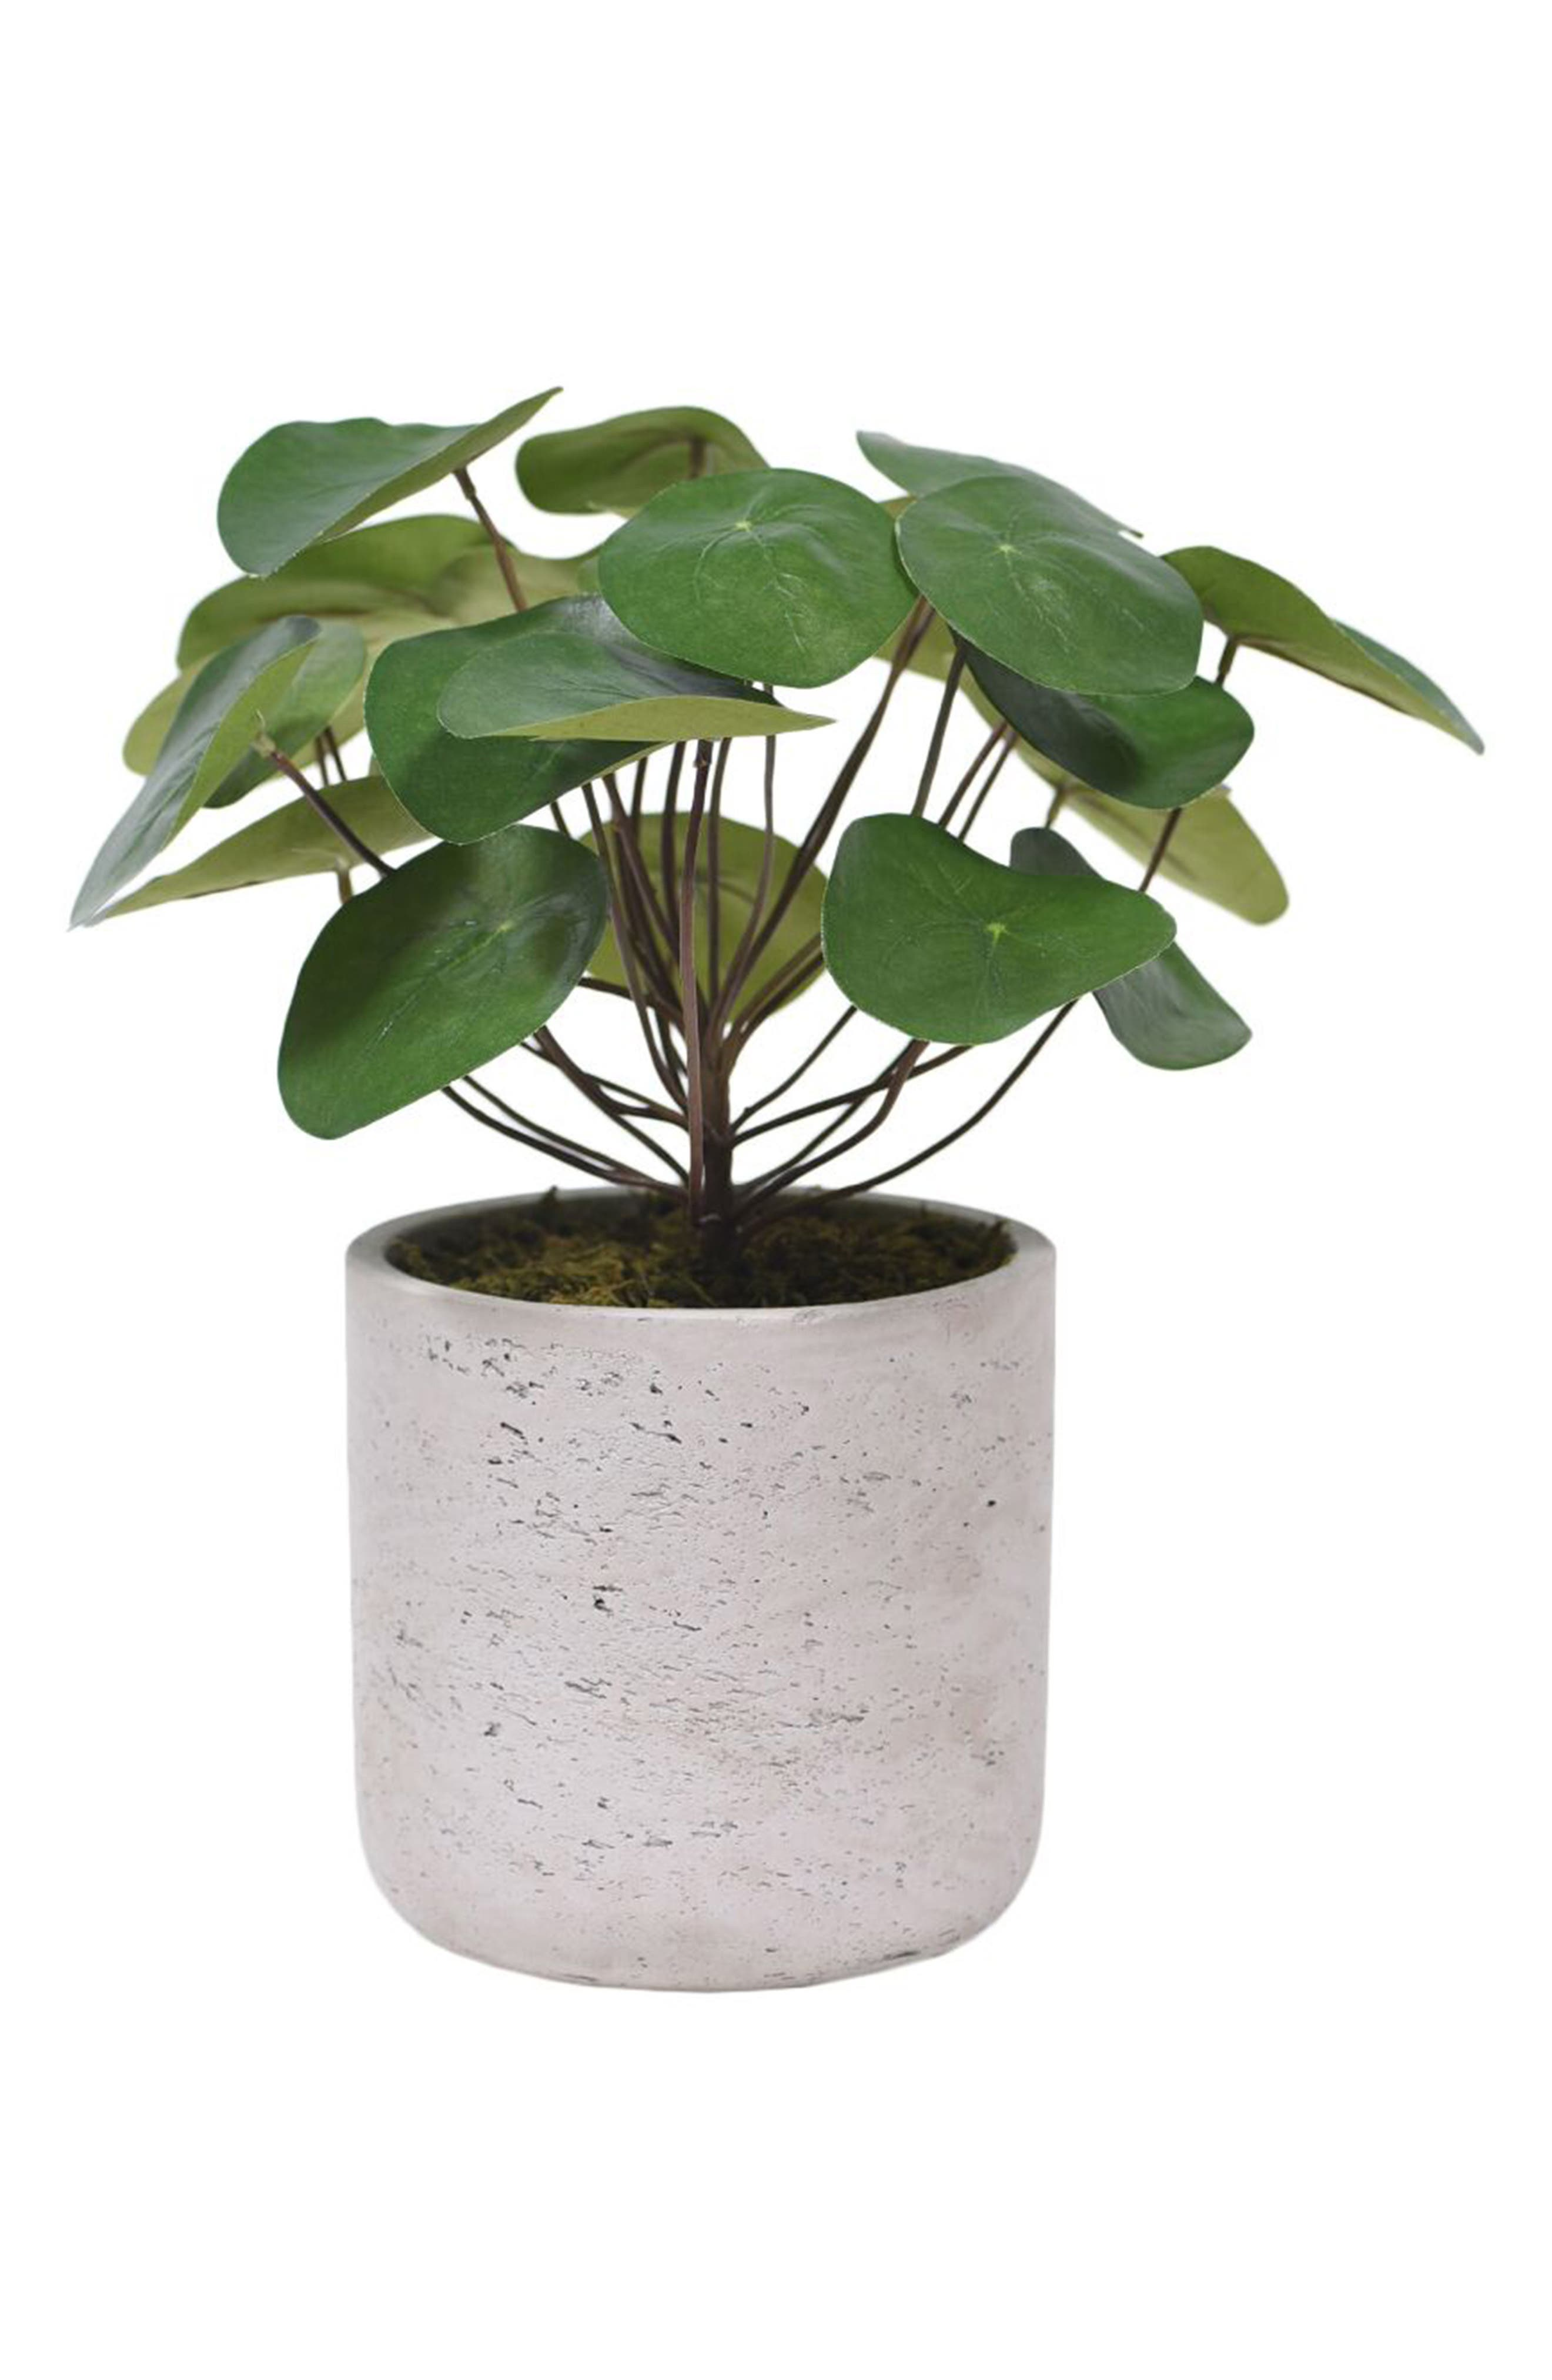 No need for a green thumb when you\\\'ve got this charming florist-designed faux pancake plant sitting cheerily in a textured concrete pot. The design serves as a perfect complement to any modern or industrial-chic decor. Style Name: Bloomr Pancake Plant Planter Decoration. Style Number: 5820994. Available in stores.